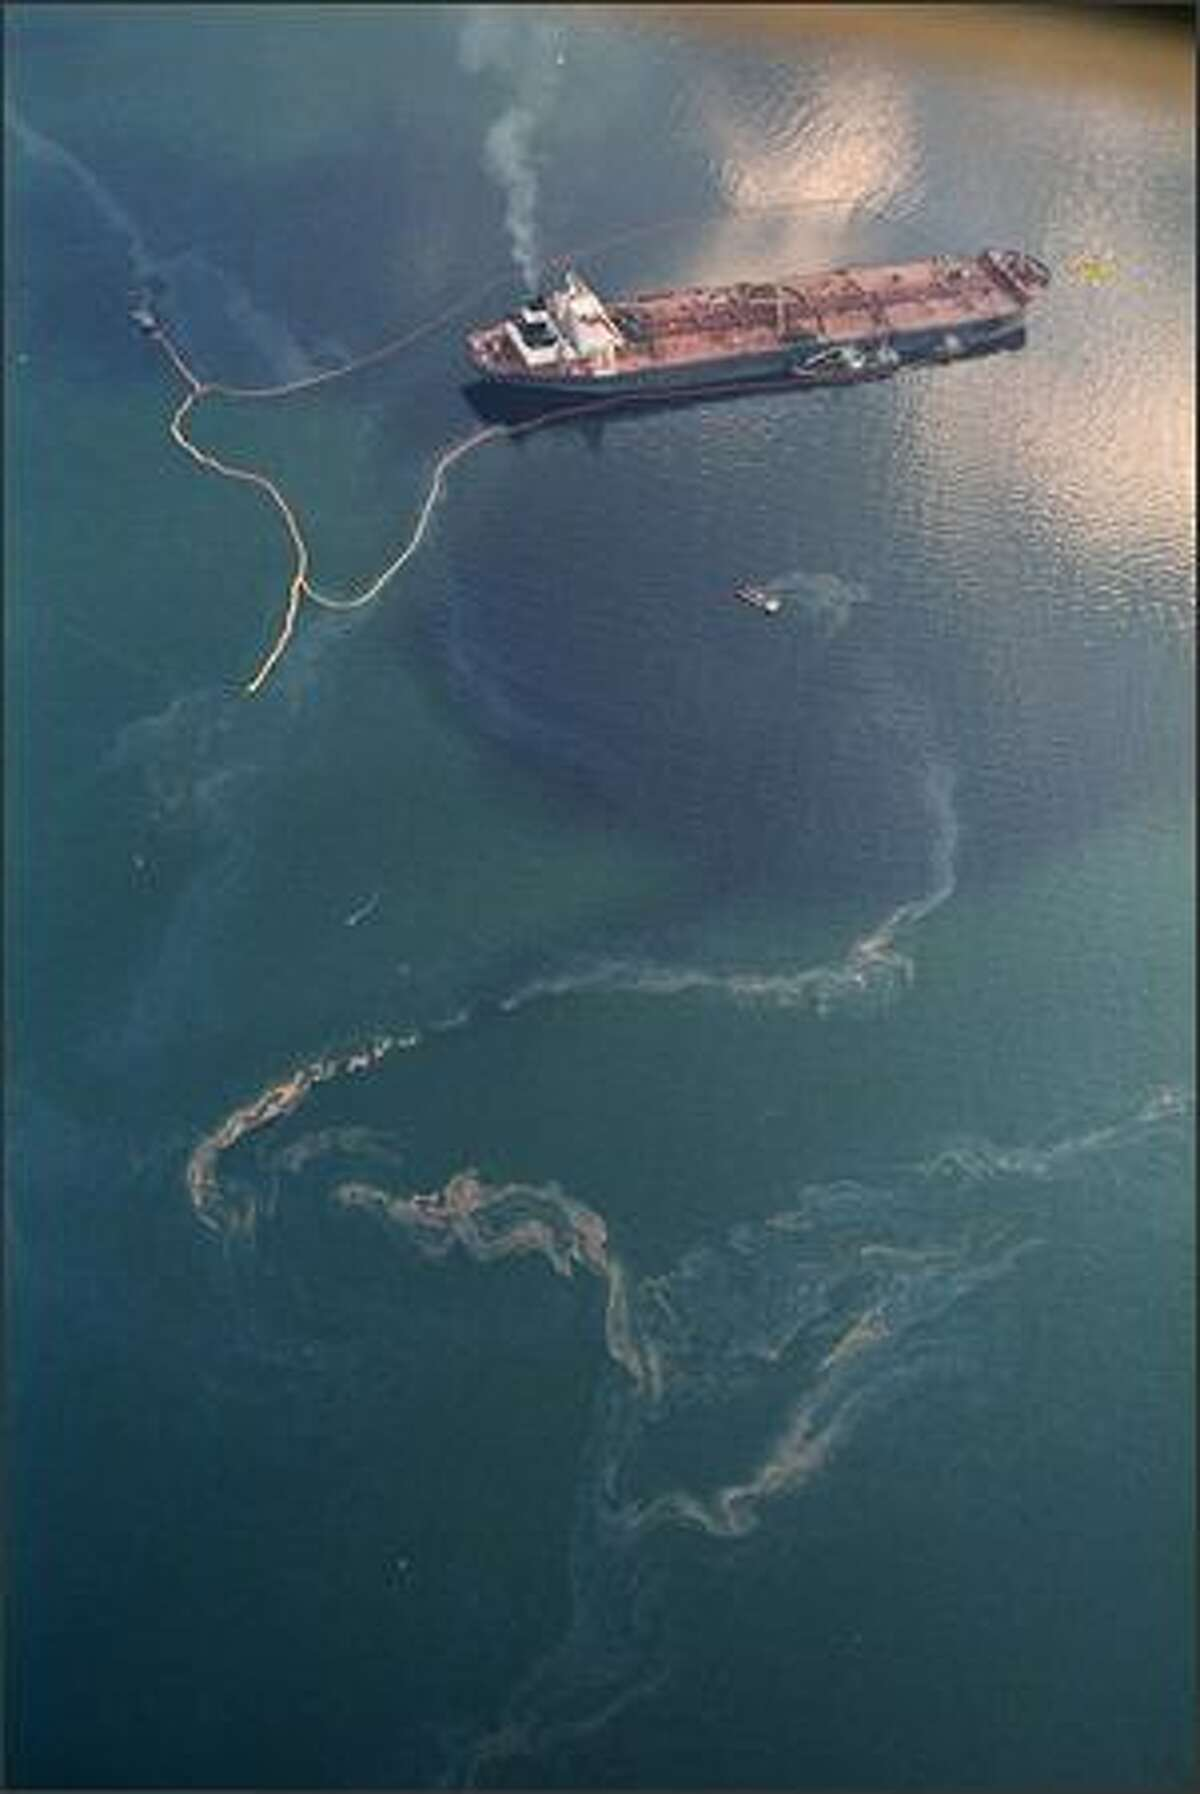 Crude oil from the tanker Exxon Valdez swirls on the surface of Alaska's Prince William Sound near Naked Island Saturday, April 9, 1989, 16 days after the tanker ran aground, spilling millions of gallons of oil and causing widespread environmental damage.